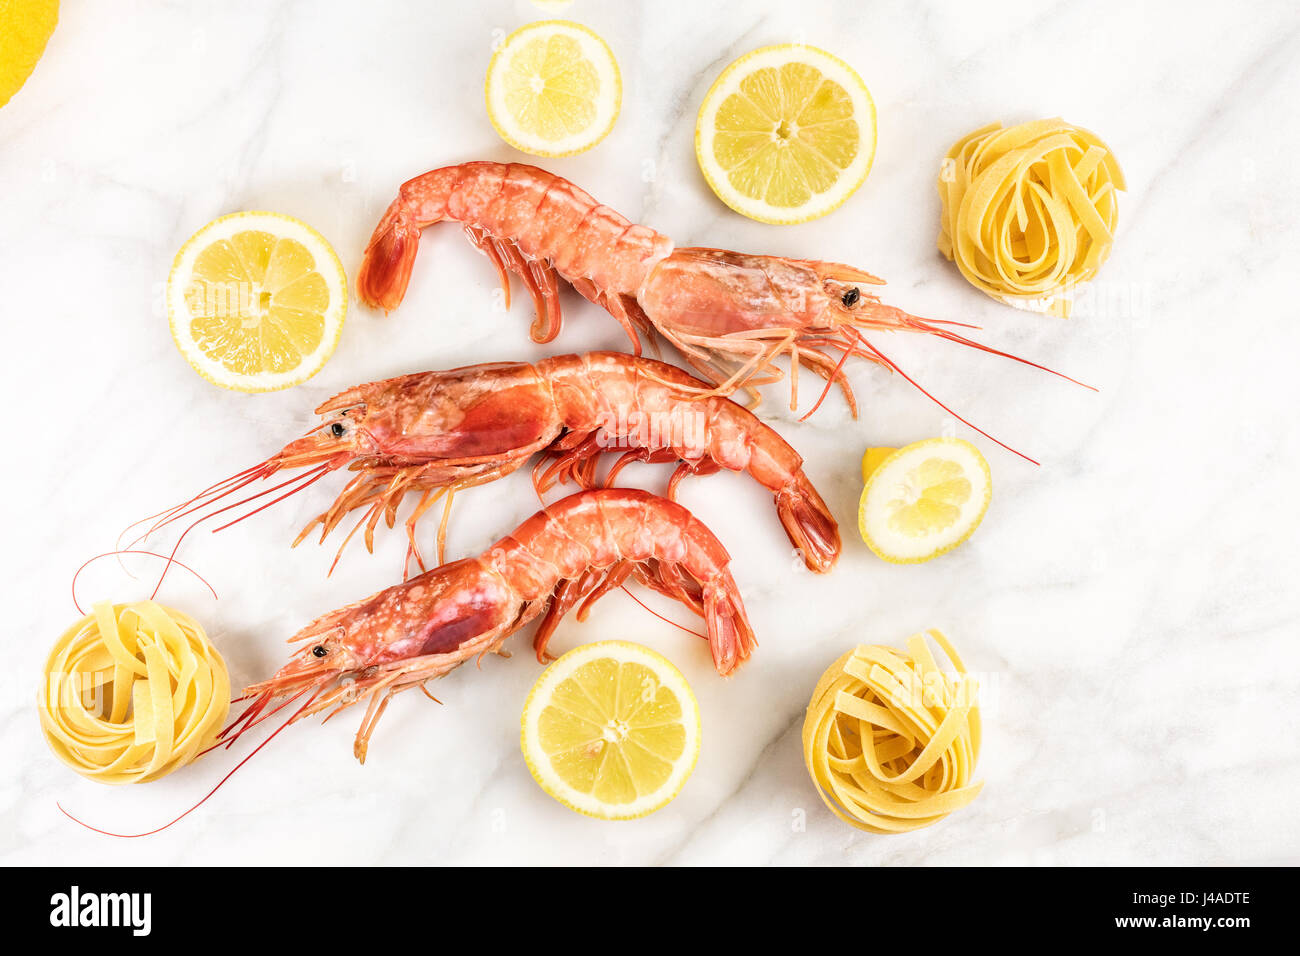 Raw shrimps with lemon and pasta on marble table - Stock Image